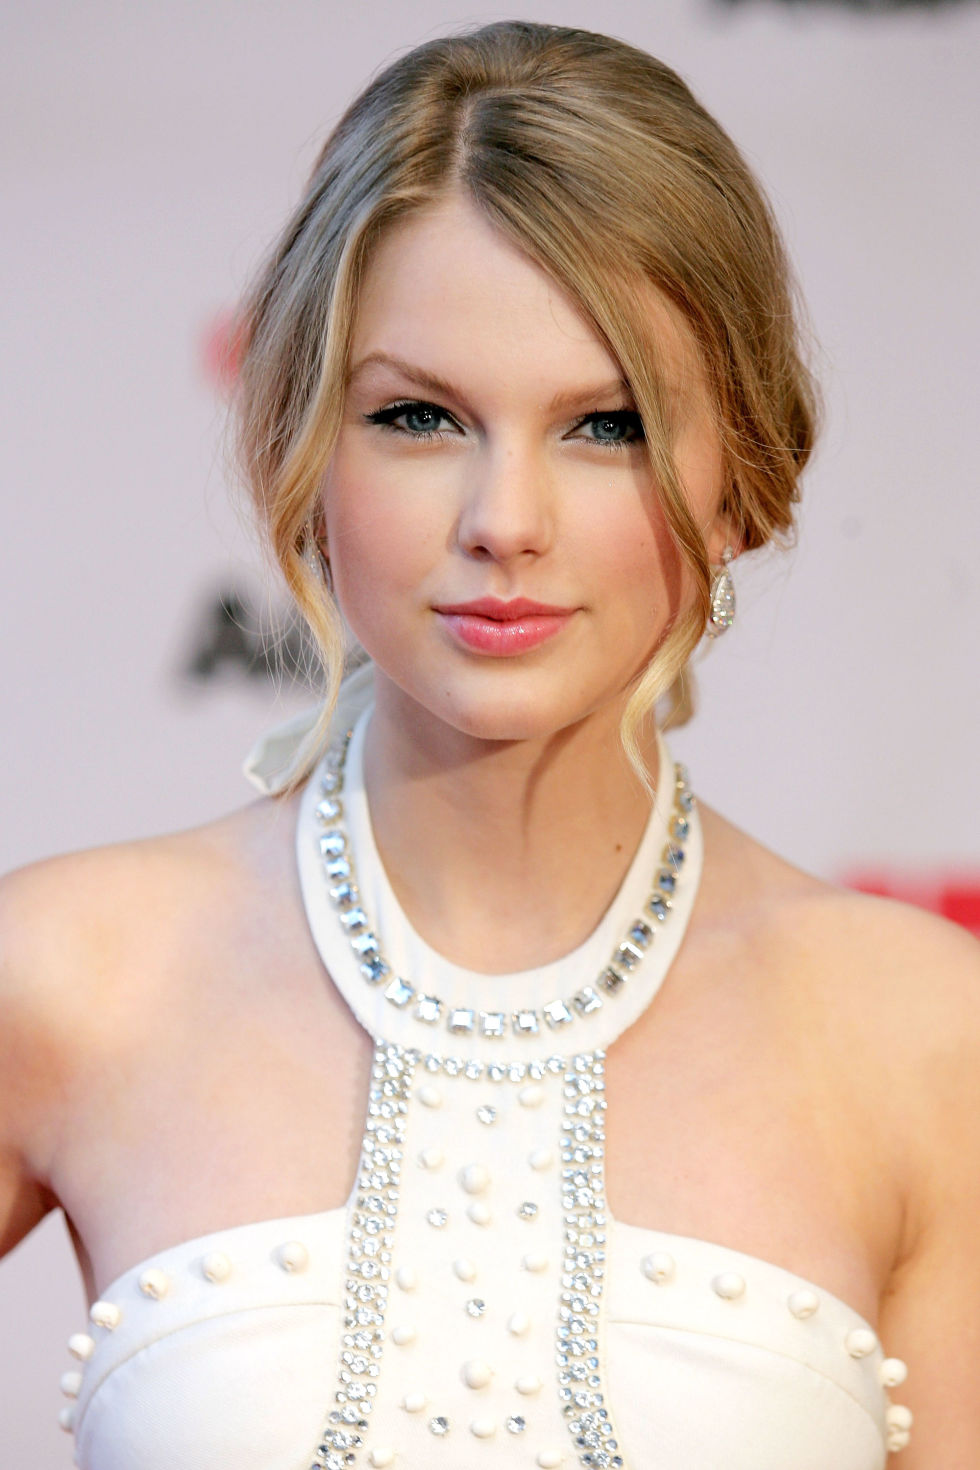 34 Taylor Swift Hairstyles - Taylor Swift's Curly, Straight, Short